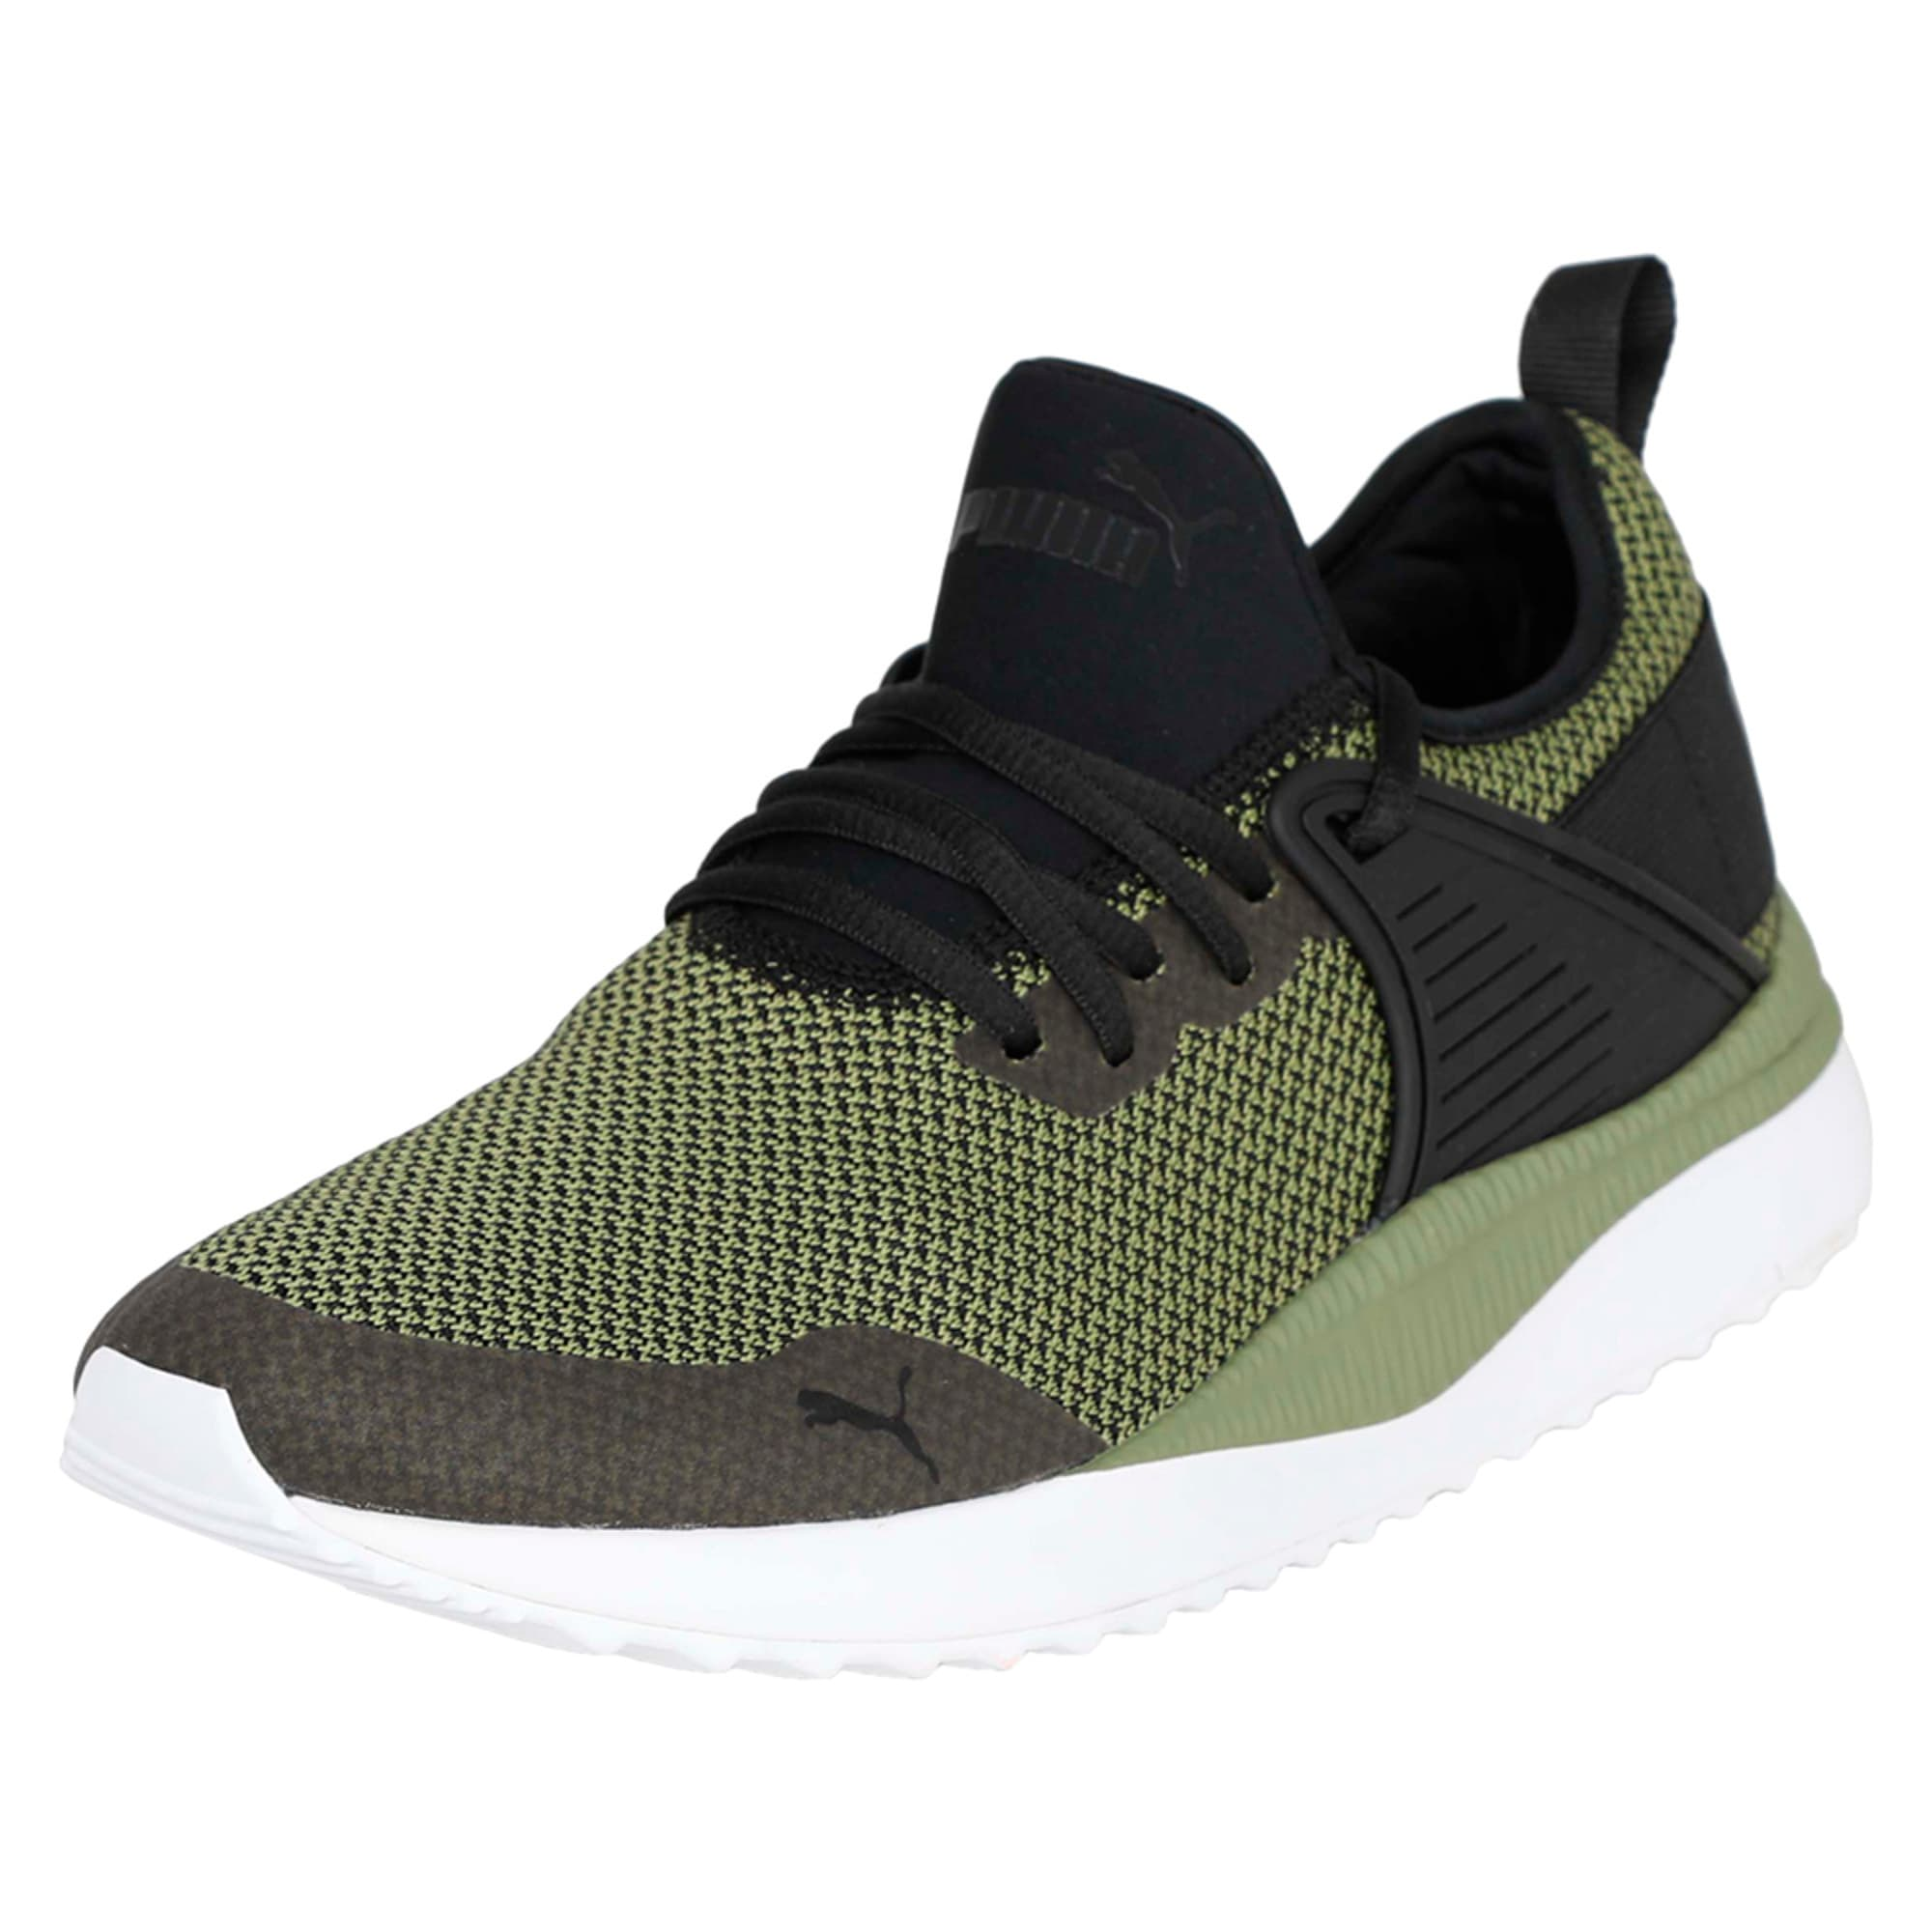 Thumbnail 1 of Pacer Next Cage GK Trainers, Puma Black-Capulet Olive, medium-IND